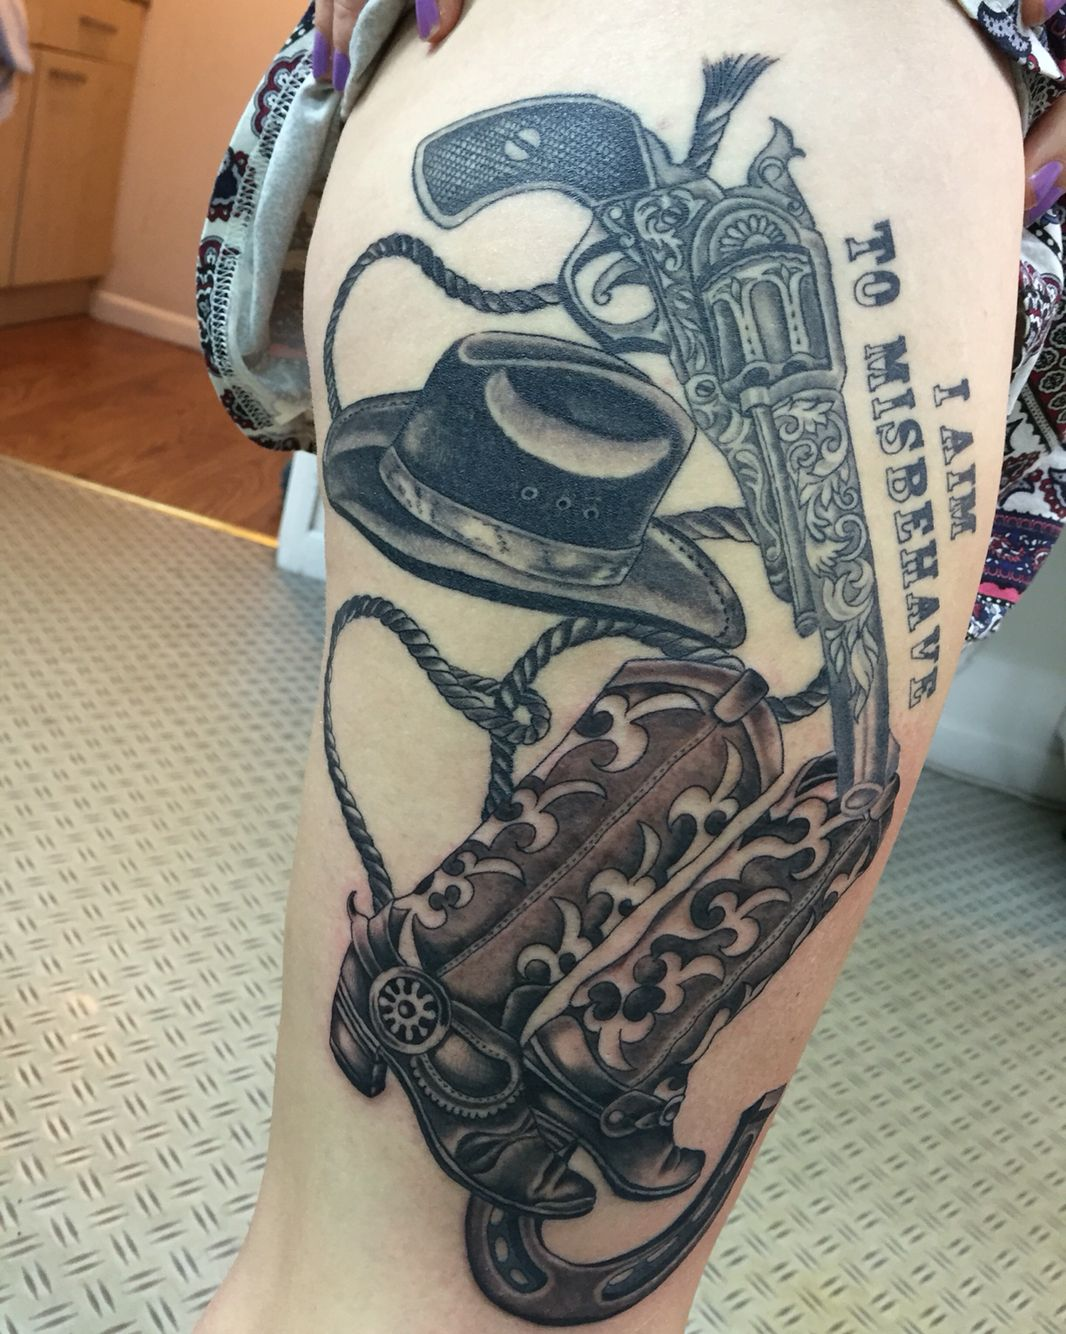 Pistol cowboy hat and cowboy boots tattoo tattoo art for Cowboy boot tattoo